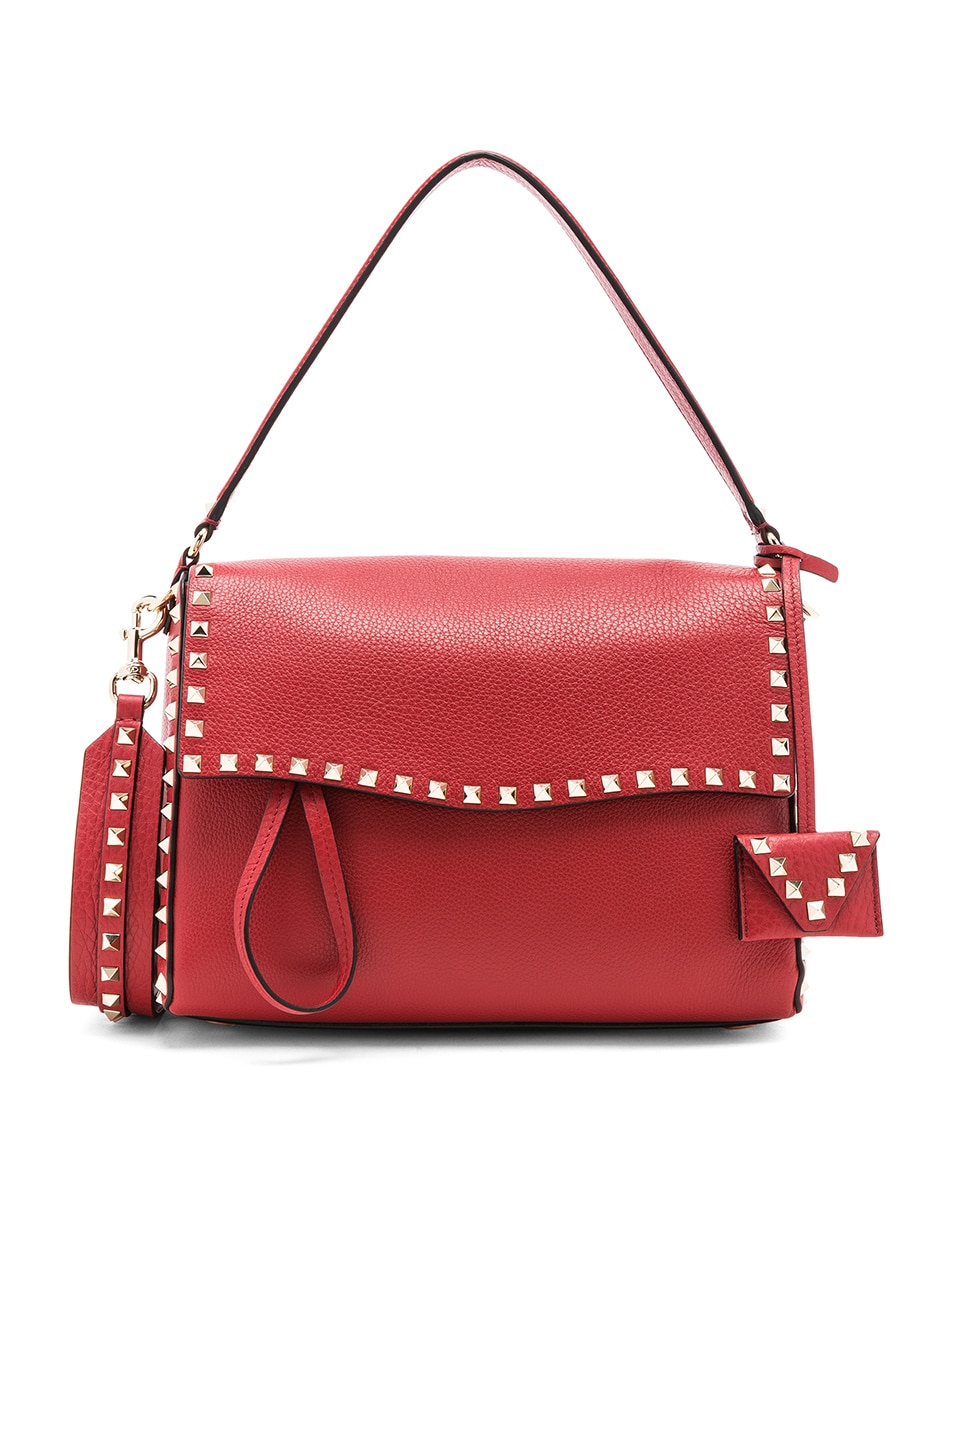 d17756959f Image 1 of Valentino Rockstud Single Handle Bag in Red